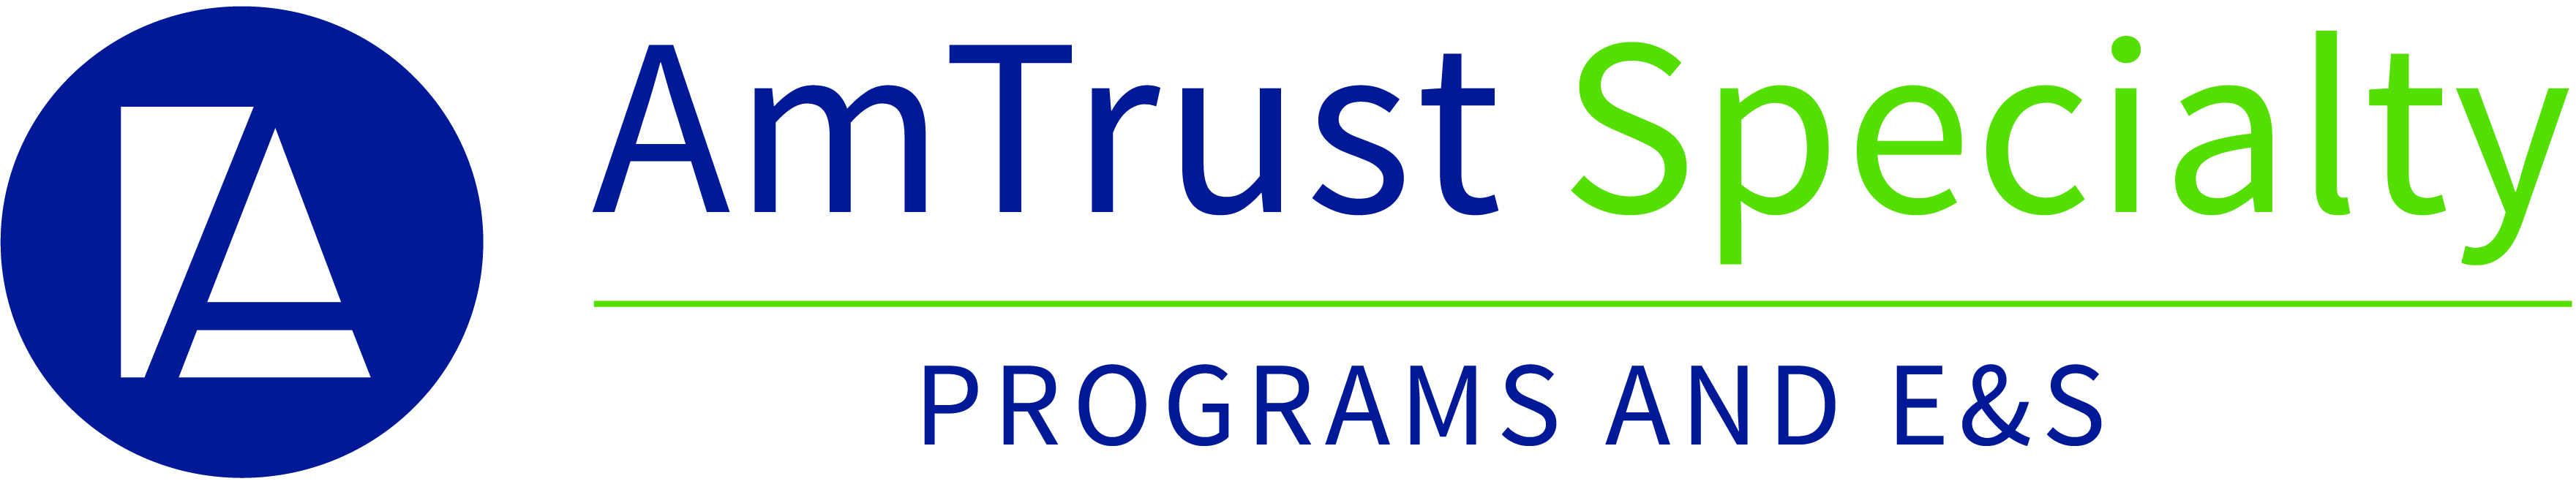 Am Trust new logo 2019